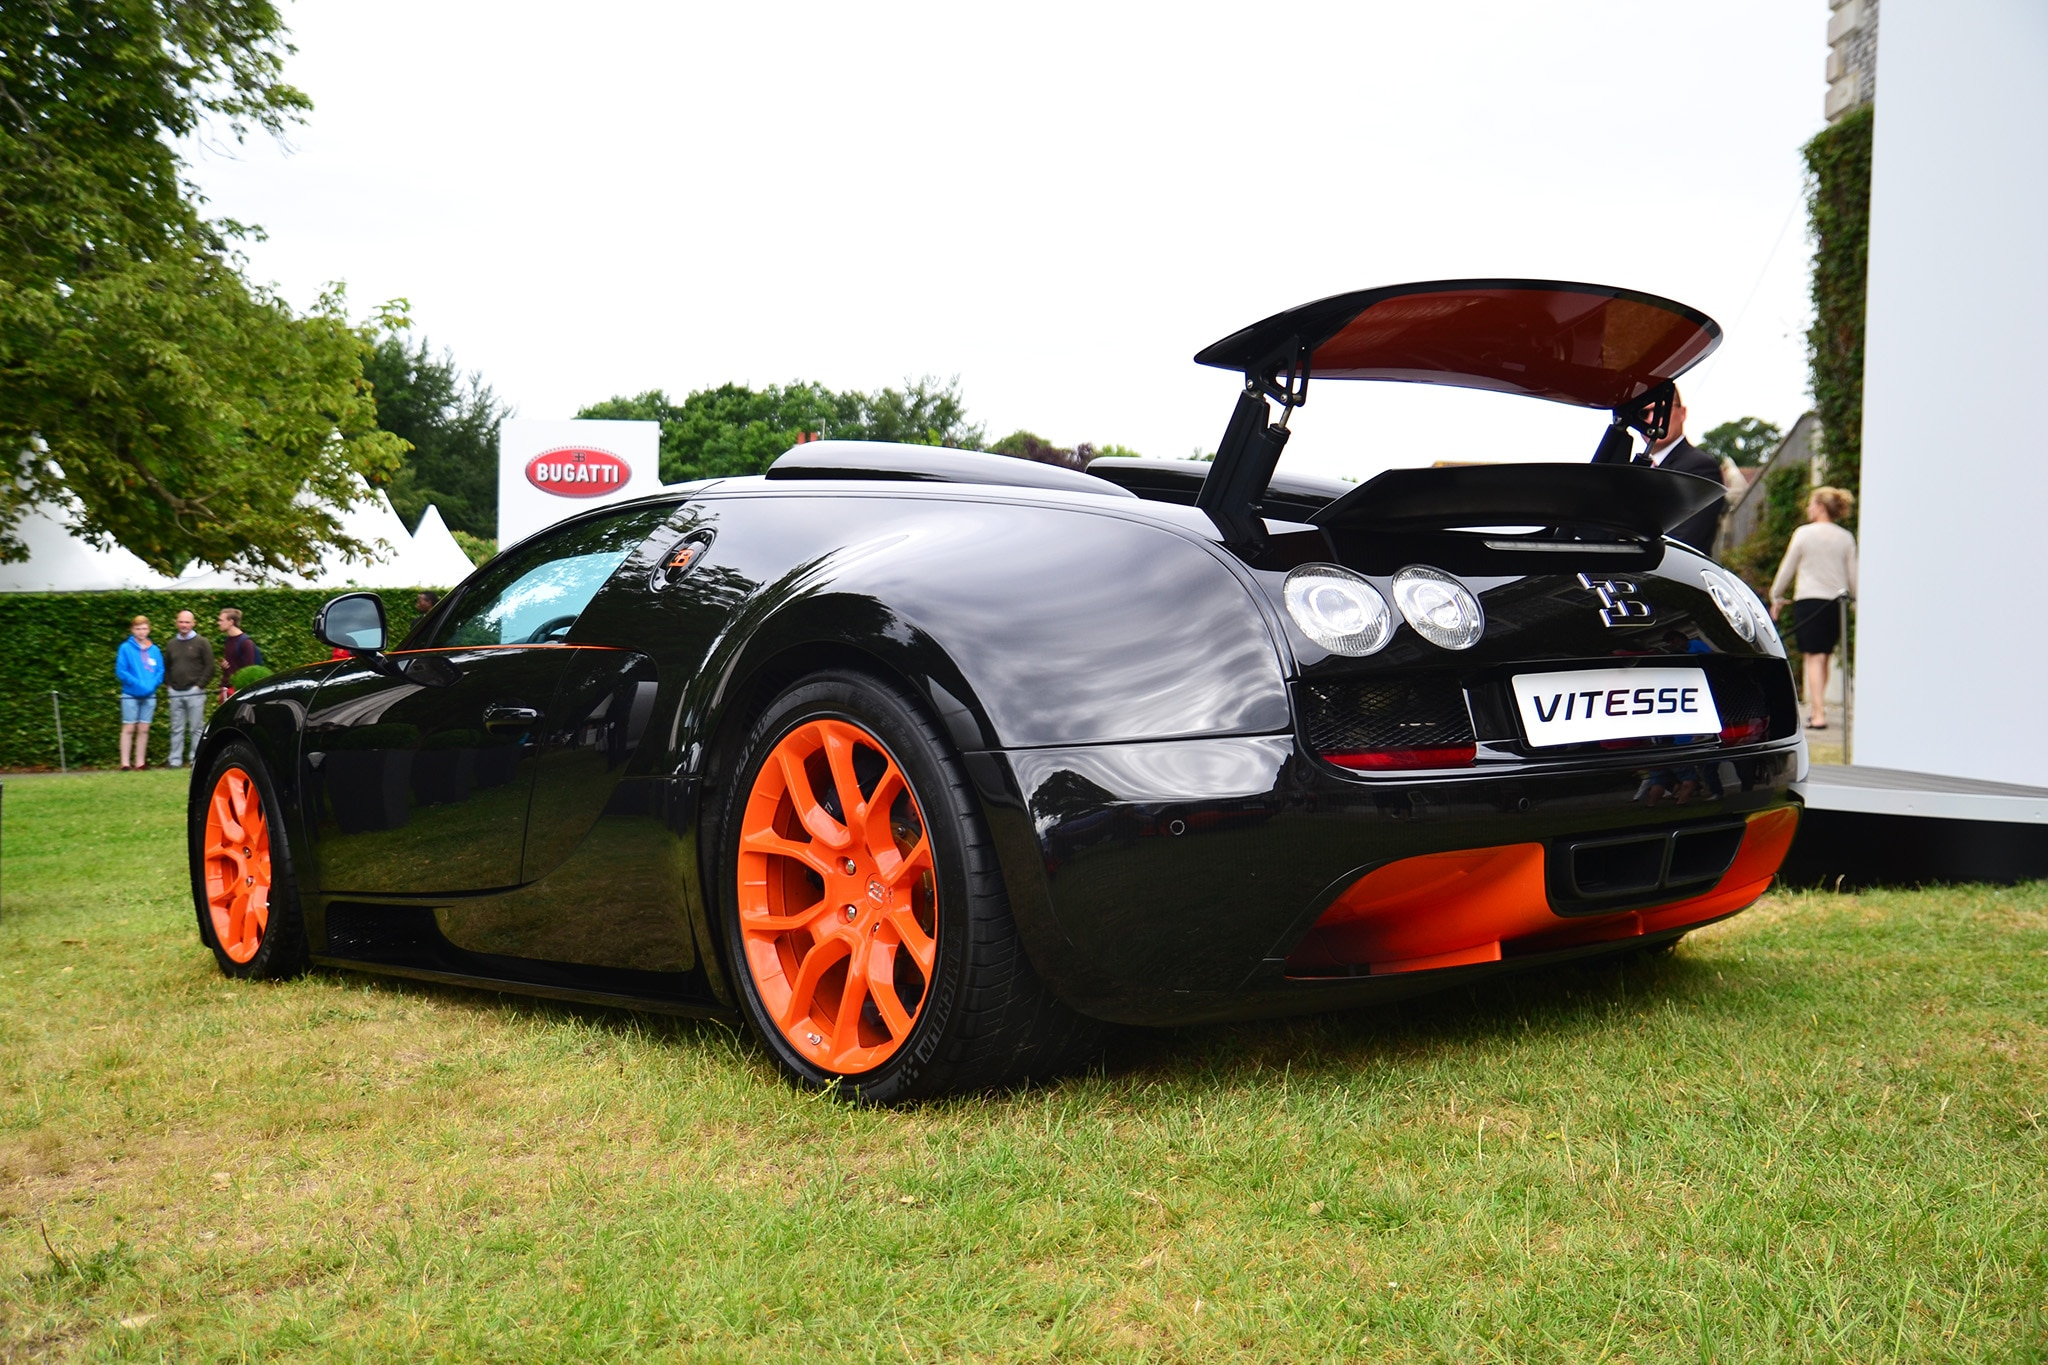 Bugatti-Veyron-Grand-Sport-Vitesse-Goodwood-Rear-Three-Quarters Extraordinary Bugatti Veyron Grand Sport Vitesse Cars Trend